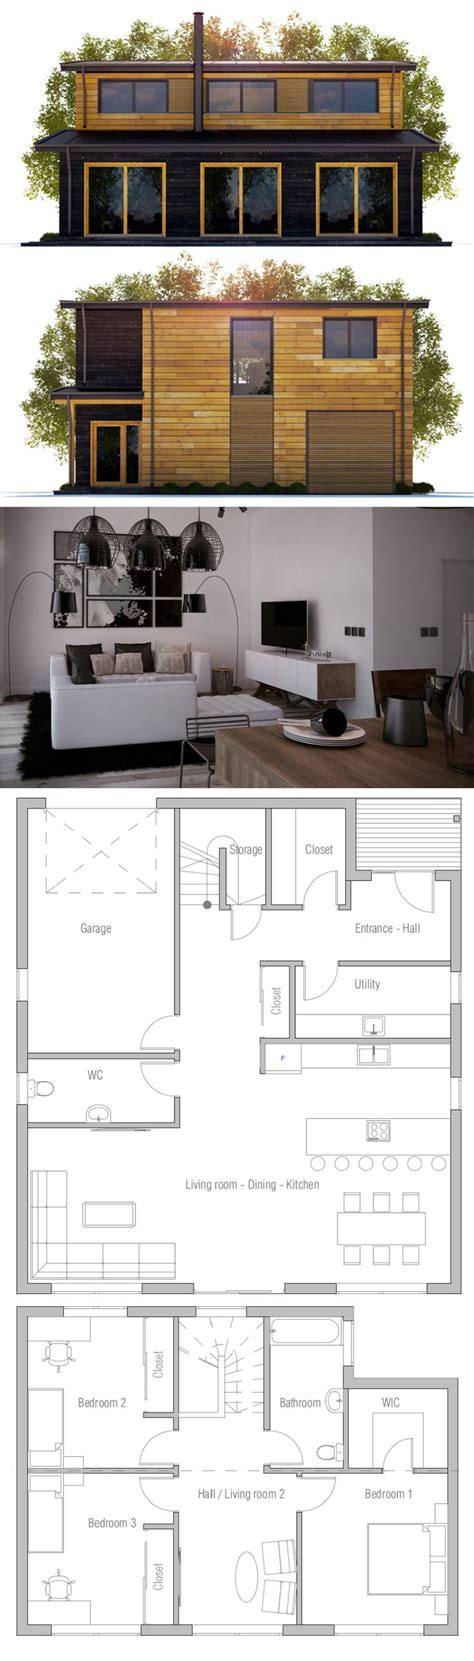 baby nursery affordable home plans to build cheap house baby nursery affordable floor plans to build marvelous